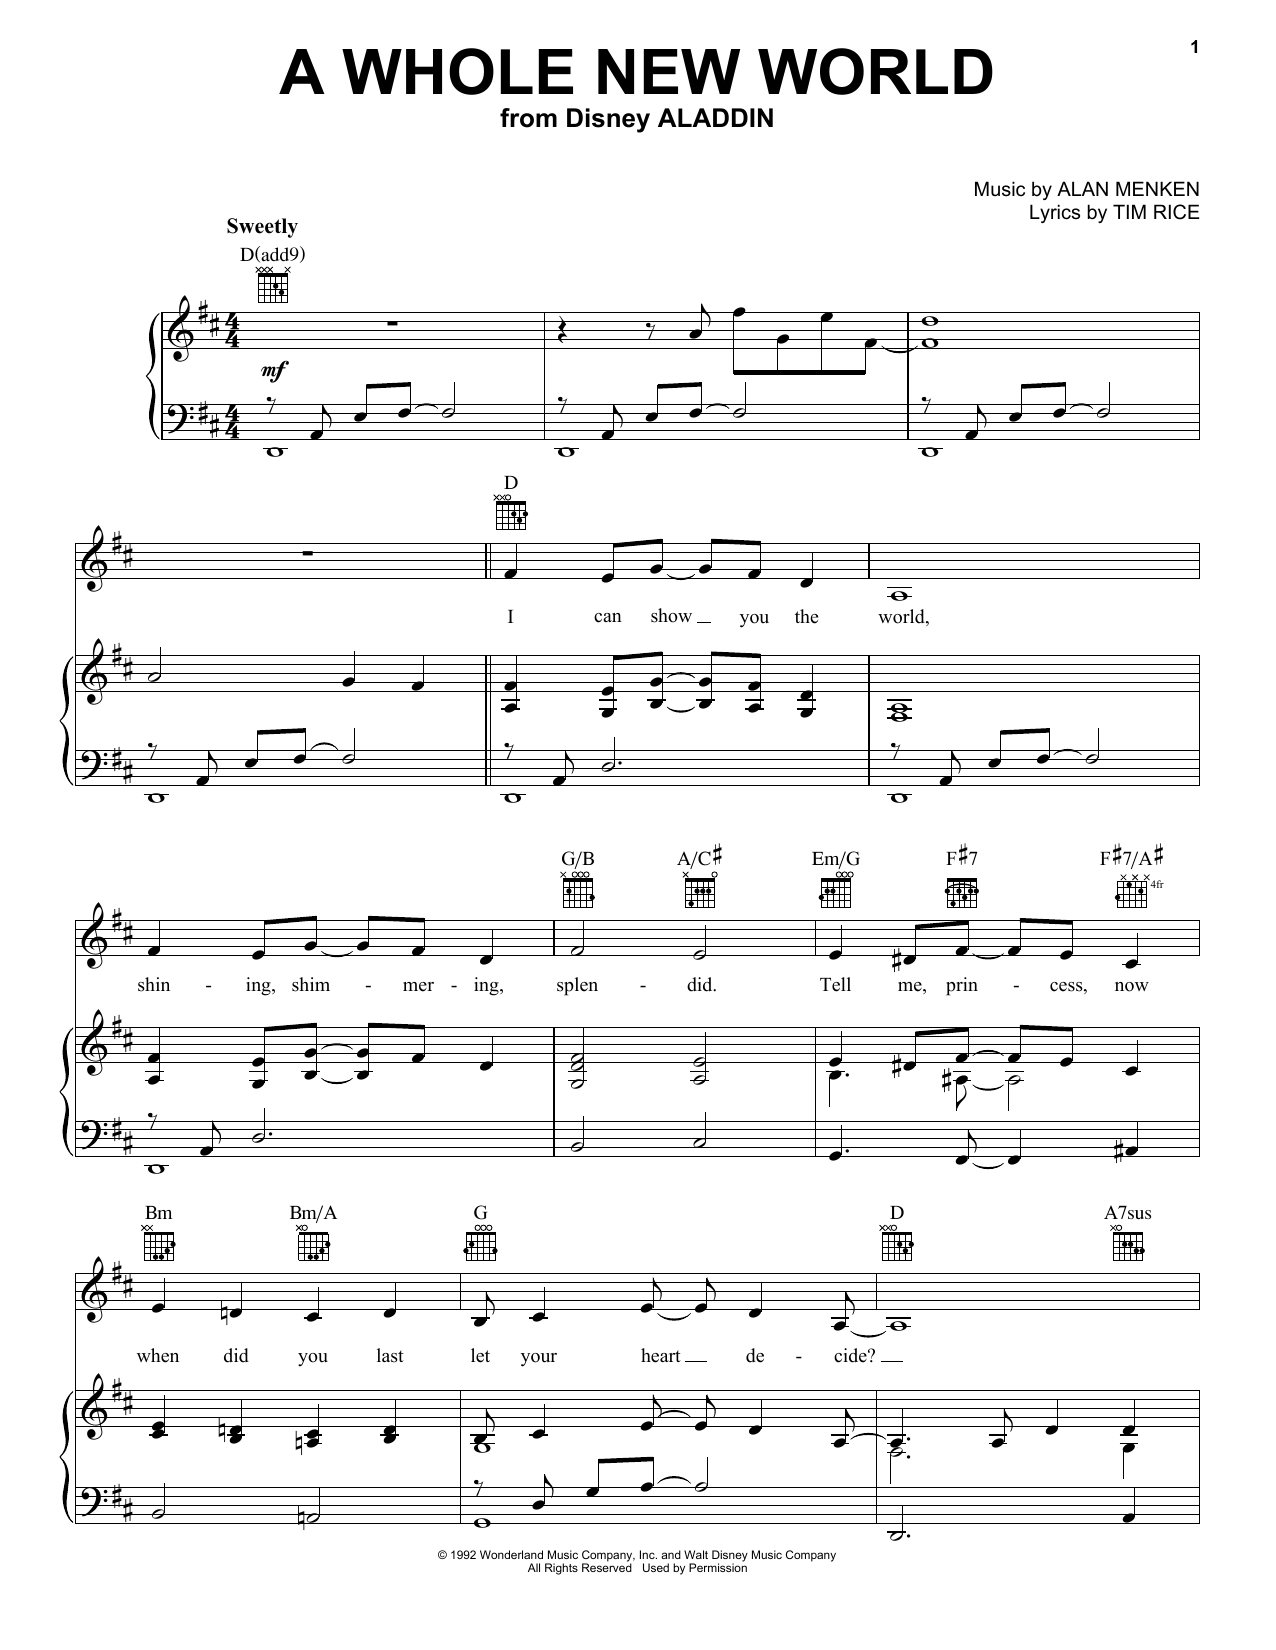 Alan Menken A Whole New World sheet music notes and chords. Download Printable PDF.